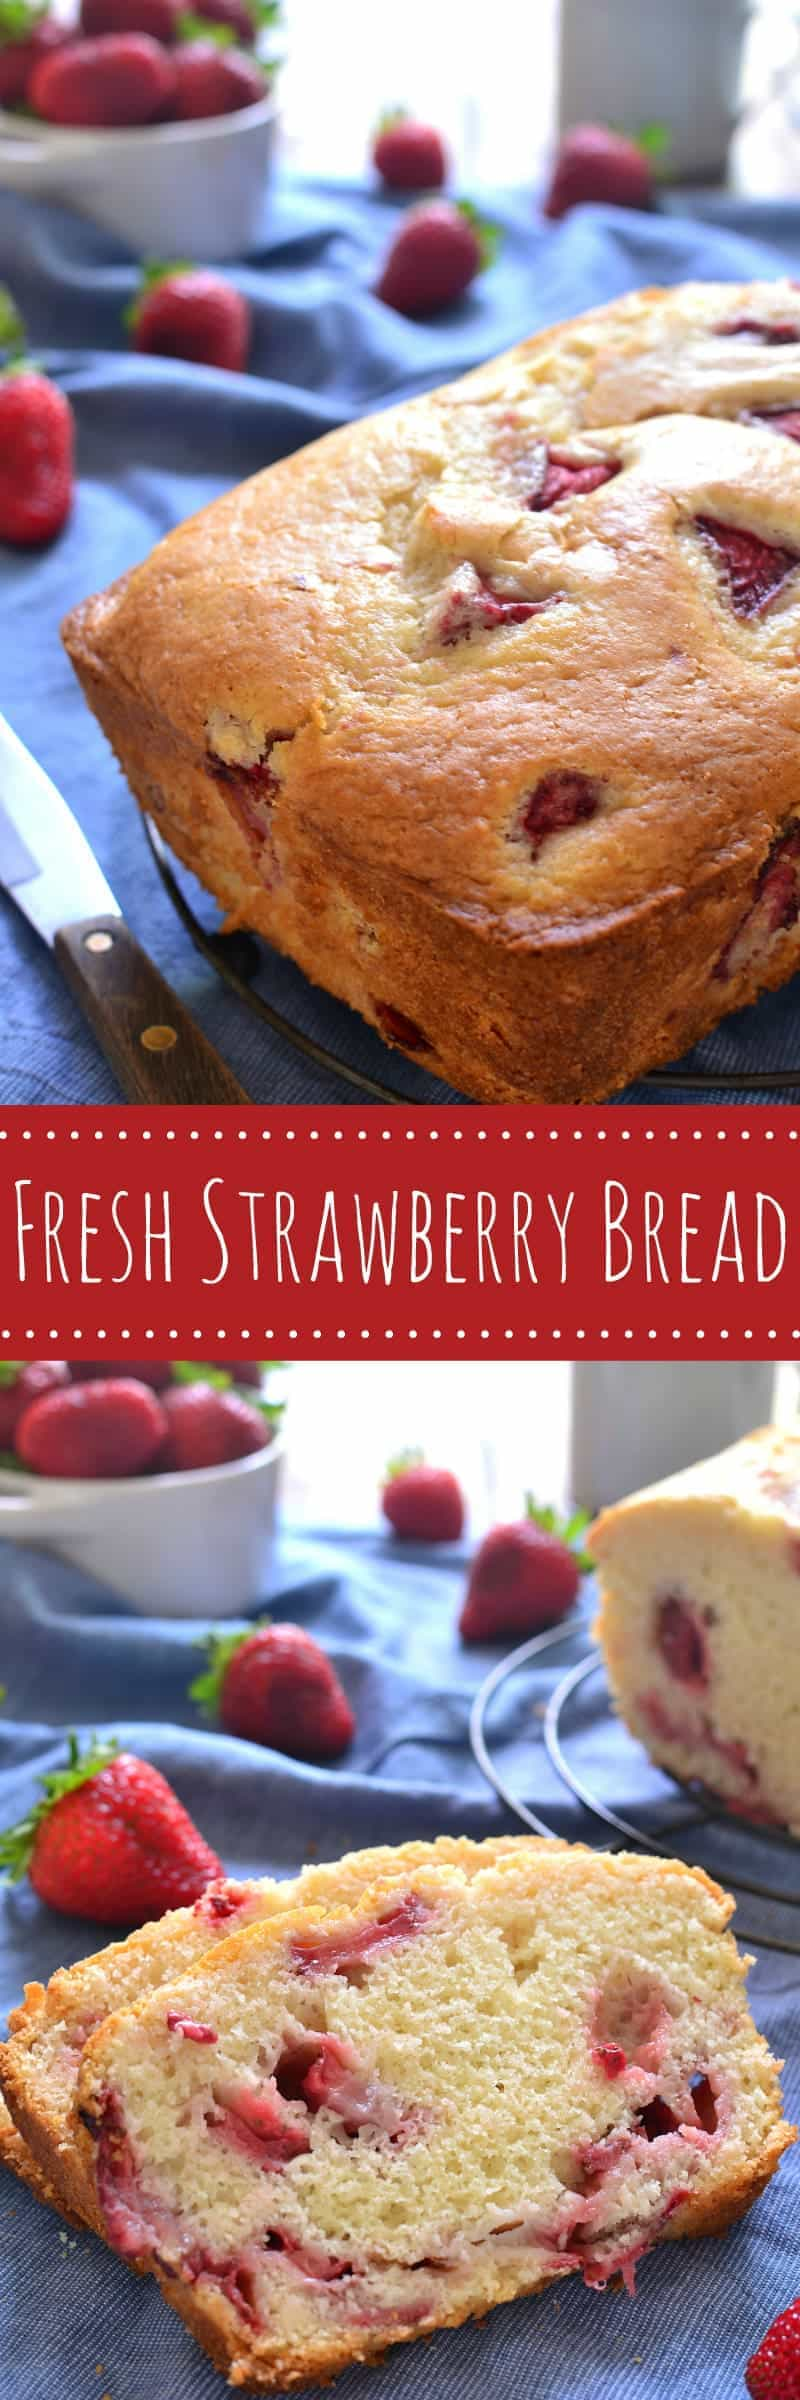 This Fresh Strawberry Bread is the perfect way to make use of fresh ...